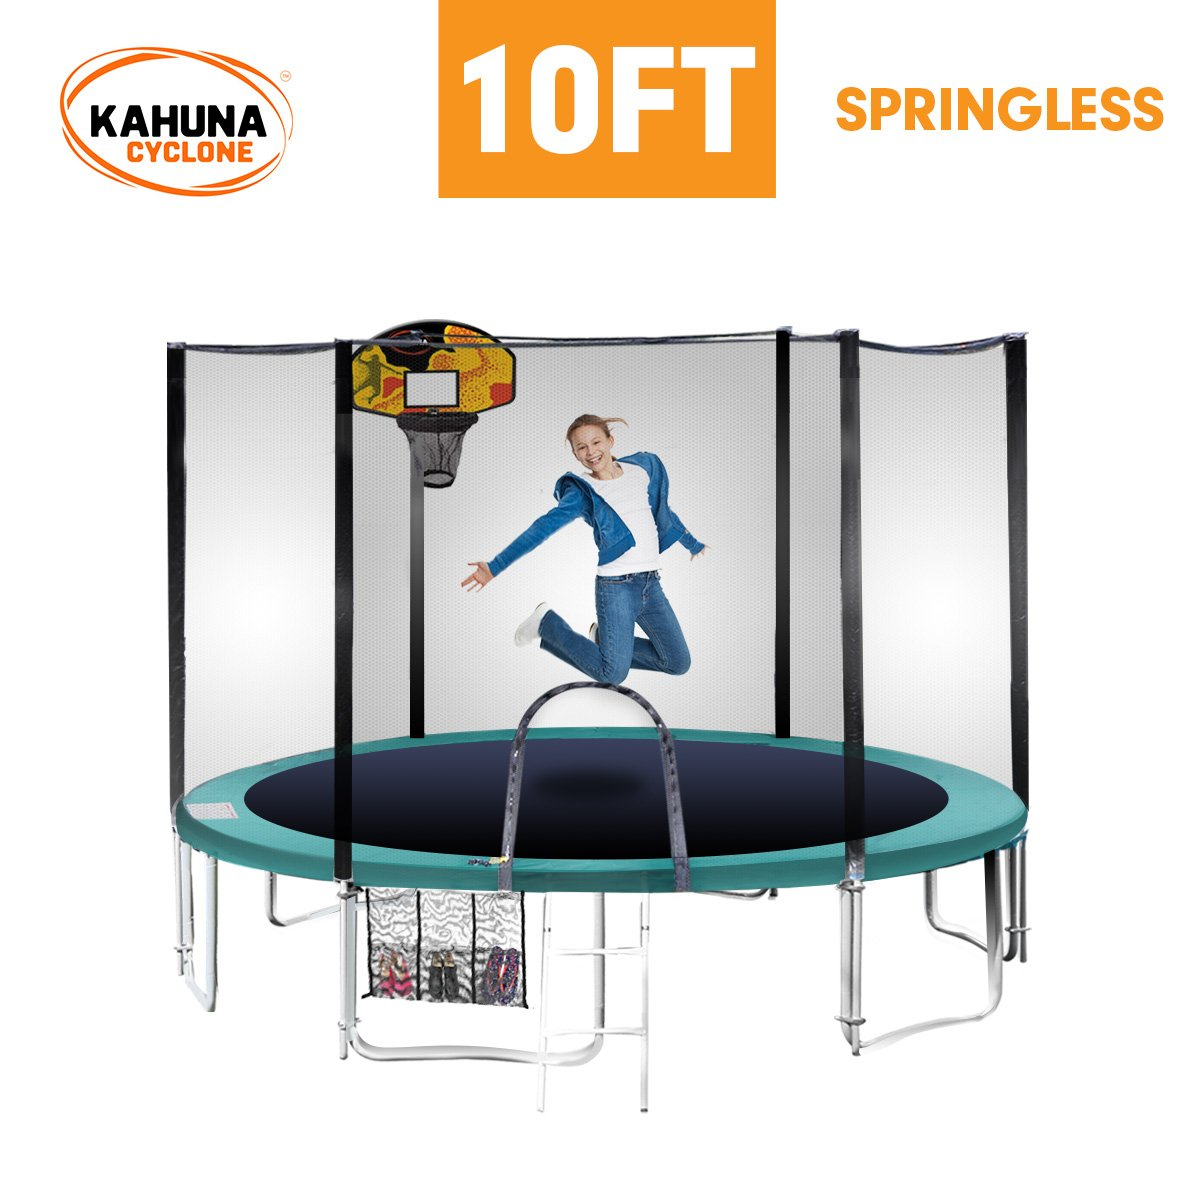 Cyclone 10 ft Springless trampoline with net